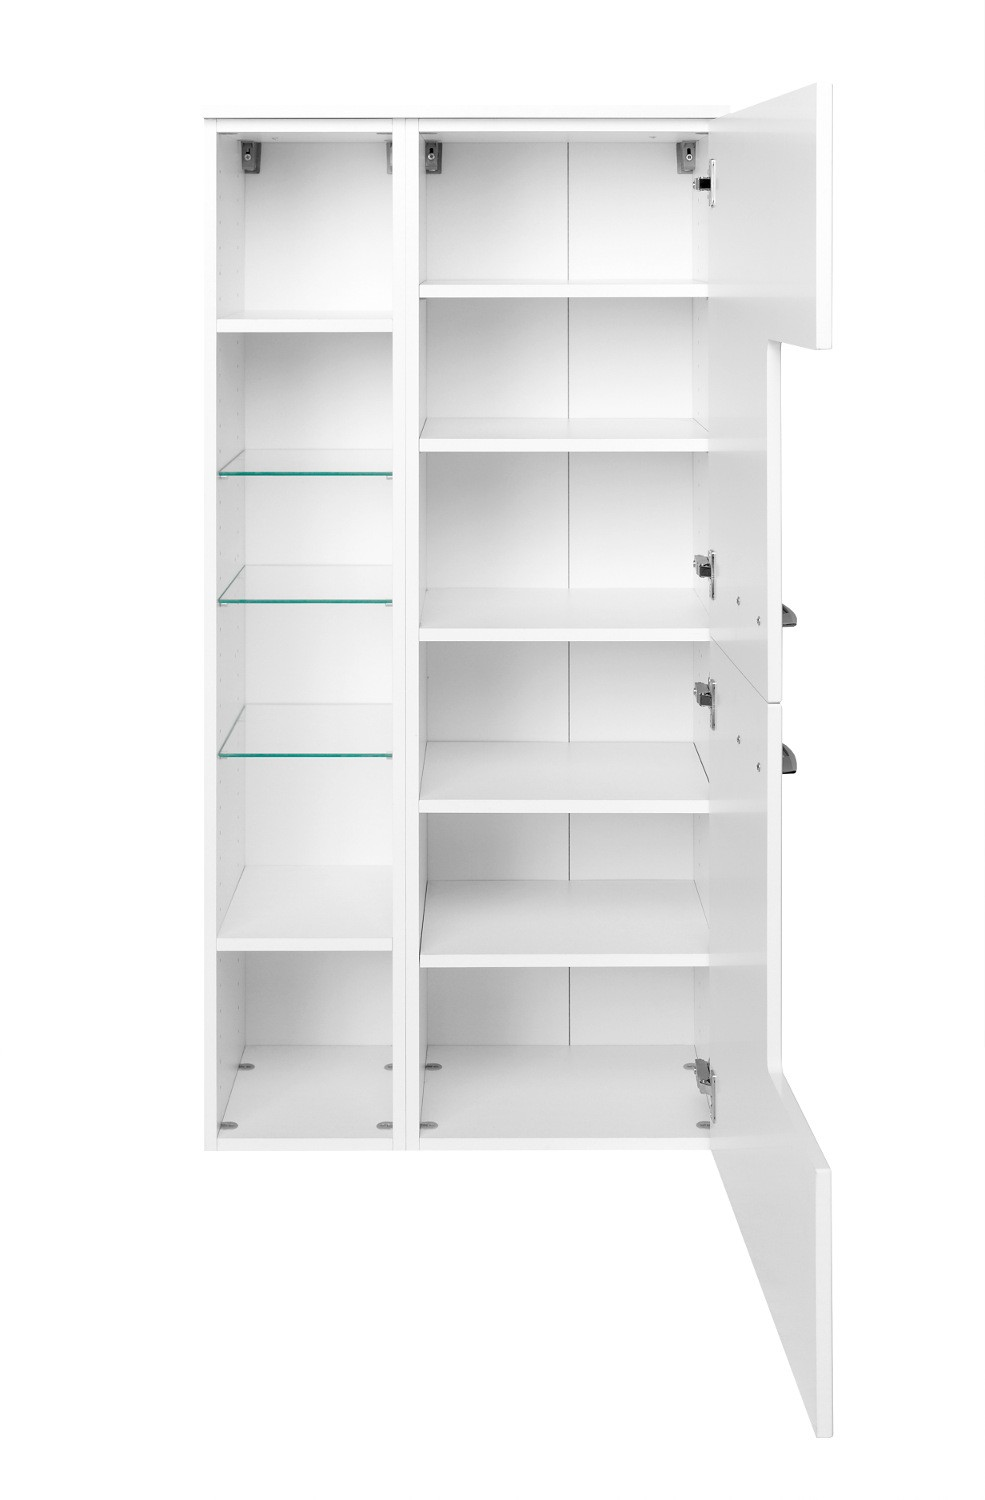 neu badezimmer midischrank florida midi highboard badezimmerschrank weiss ebay. Black Bedroom Furniture Sets. Home Design Ideas